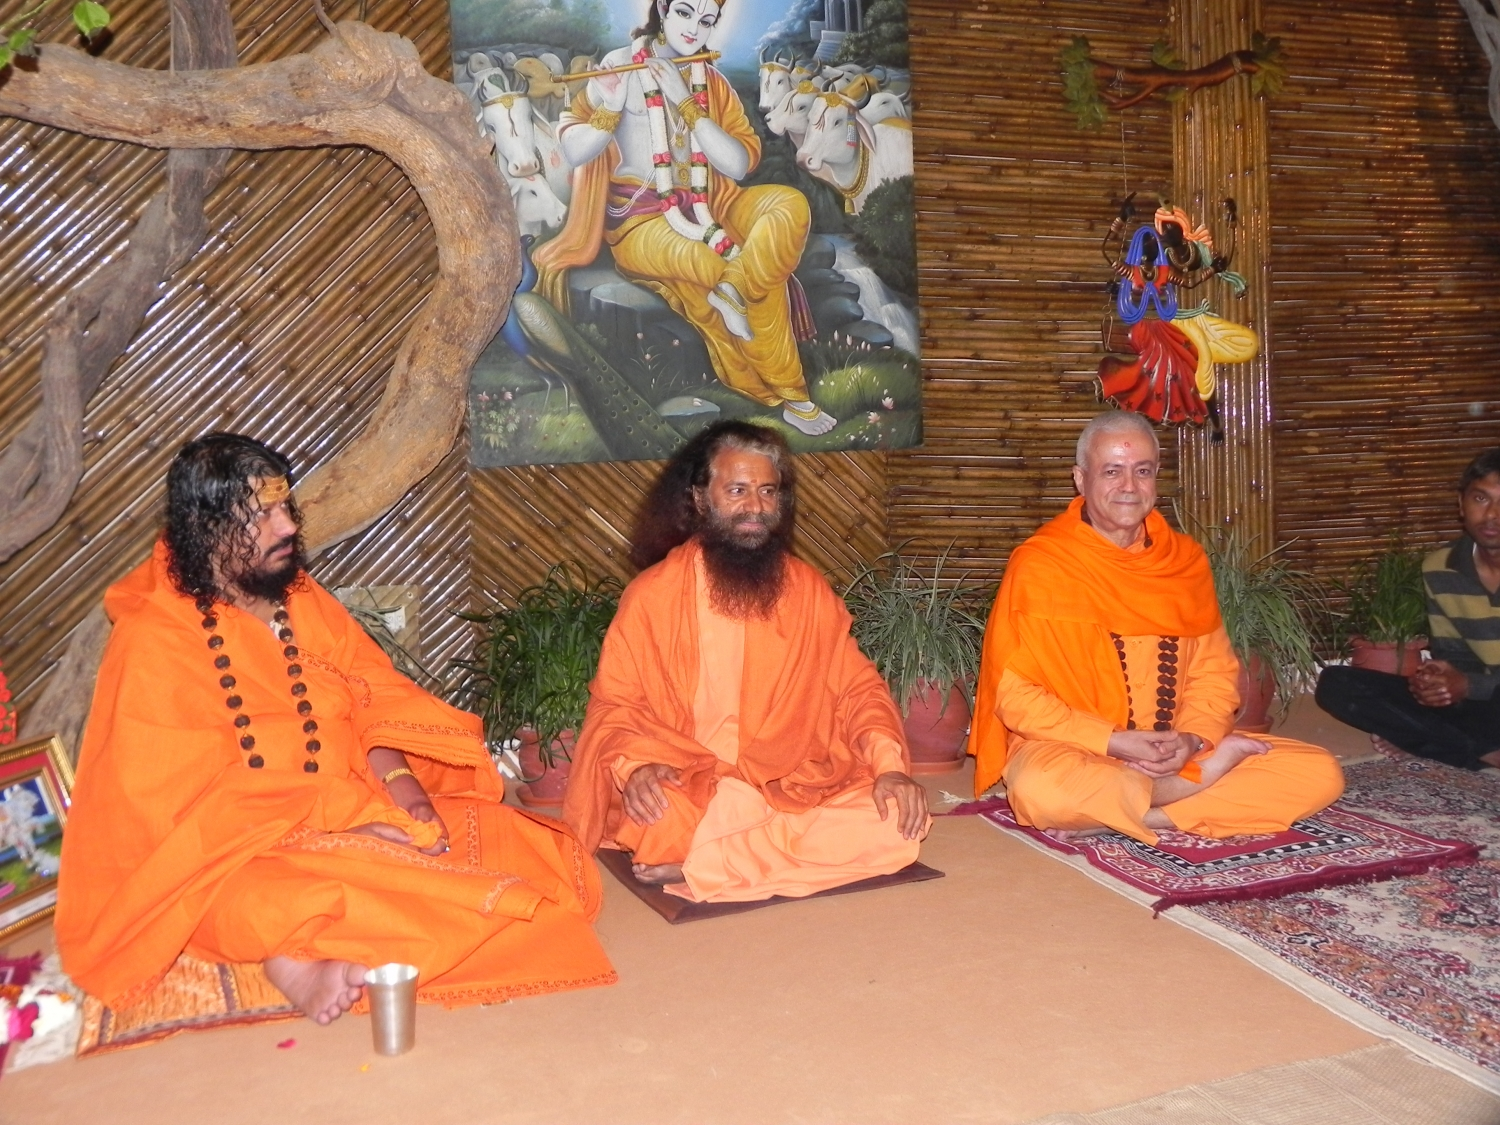 Meeting of H.H. Jagat Guru Amrta Sūryānanda Mahā Rāja with H.H. Pujya Svámin Chidanand Sarasvatiji Maharaj, visit to the Parmarth Niketan Áshrama, rshikesh, India - 2013, March